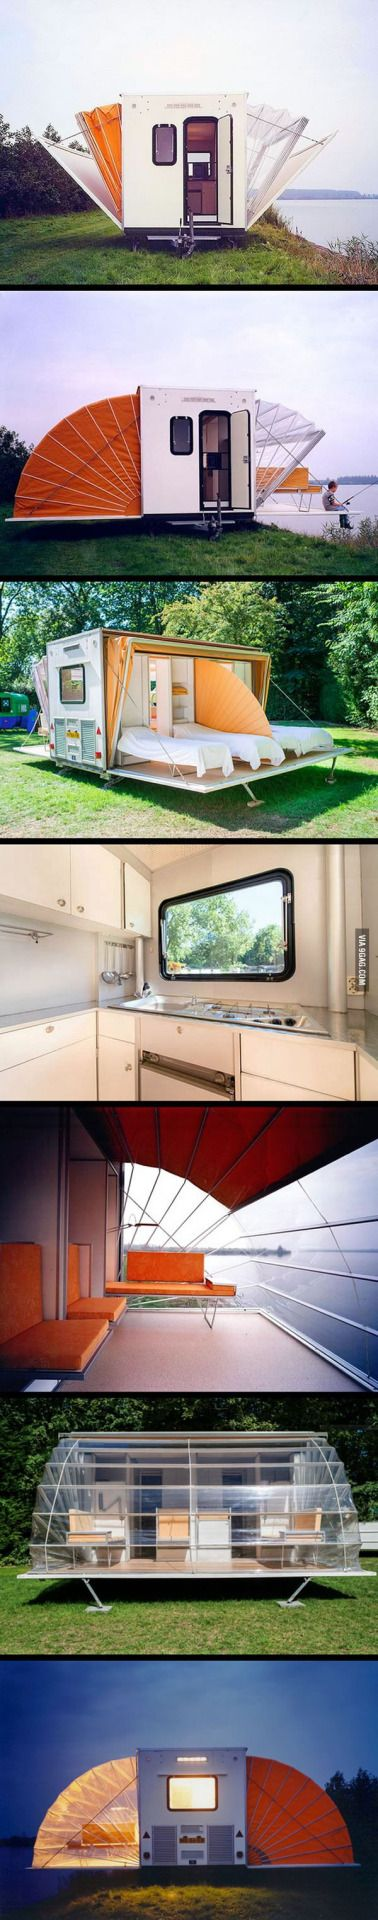 Never know camping can be this coolhttp://ragecomics4you.tumblr.com